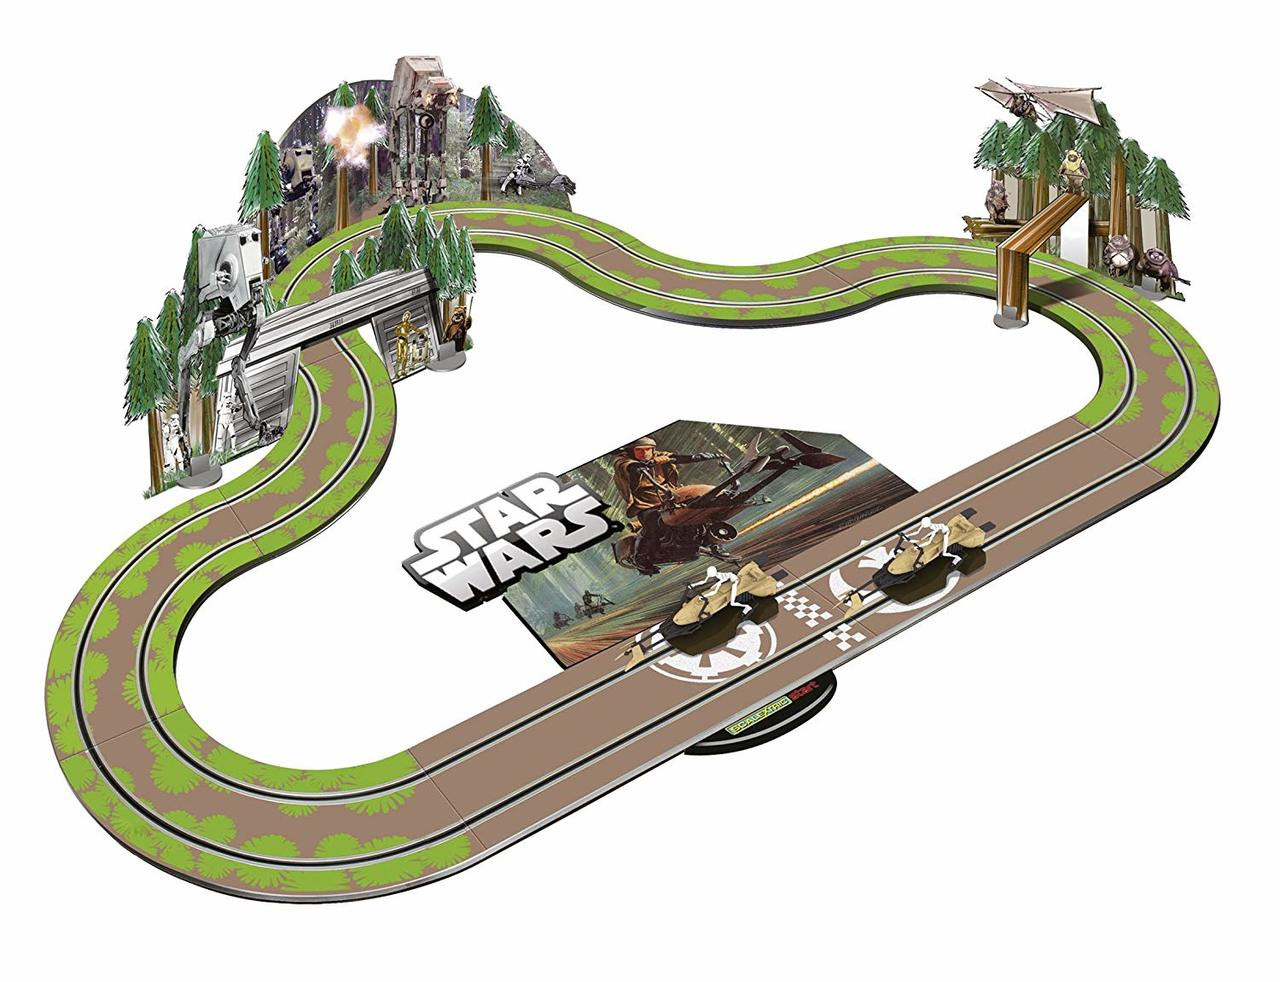 C1288 Scalextric Start Star Wars Battle of Endor 1:32 Scale Race Set